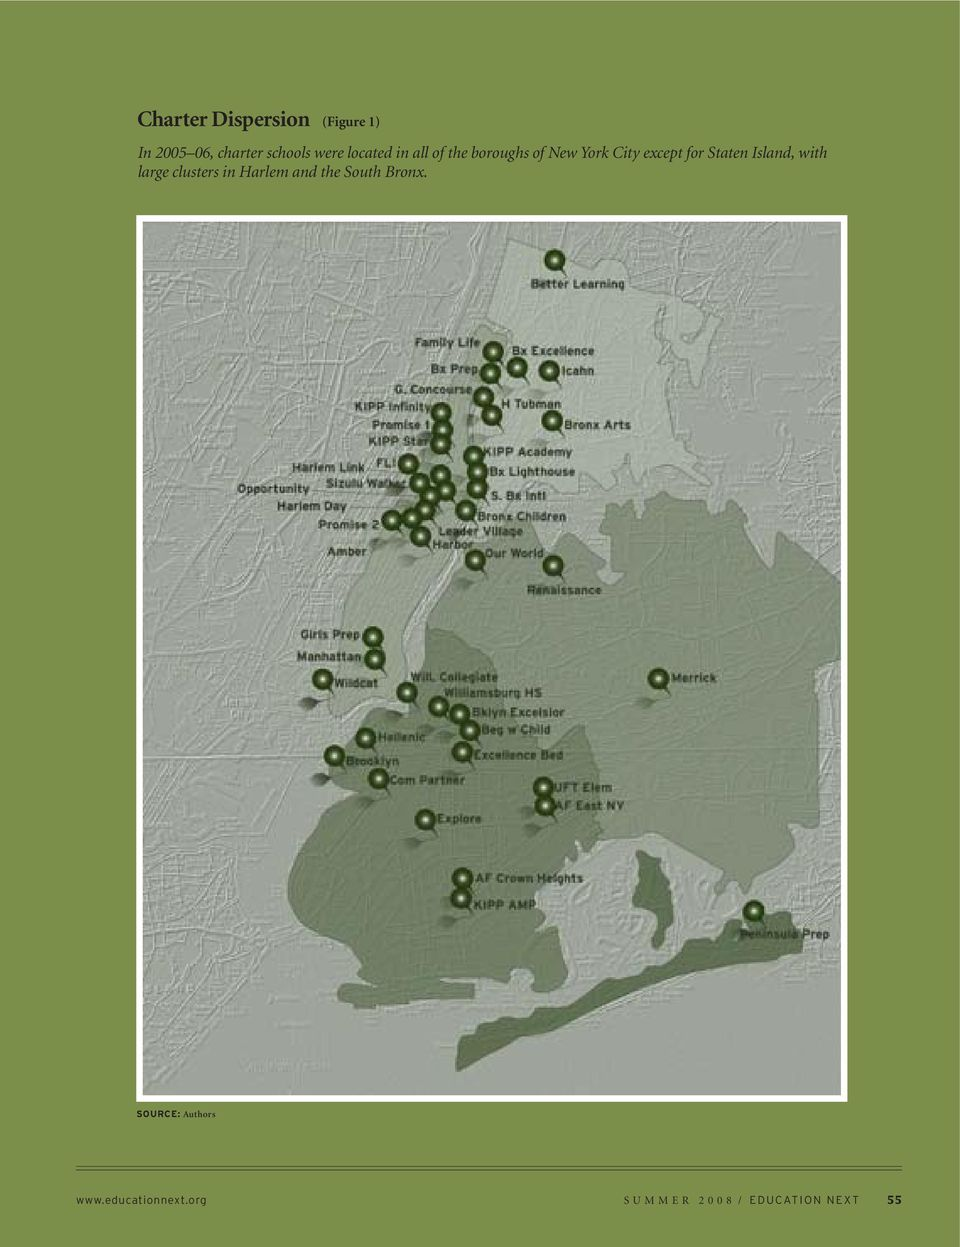 Staten Island, with large clusters in Harlem and the South Bronx.